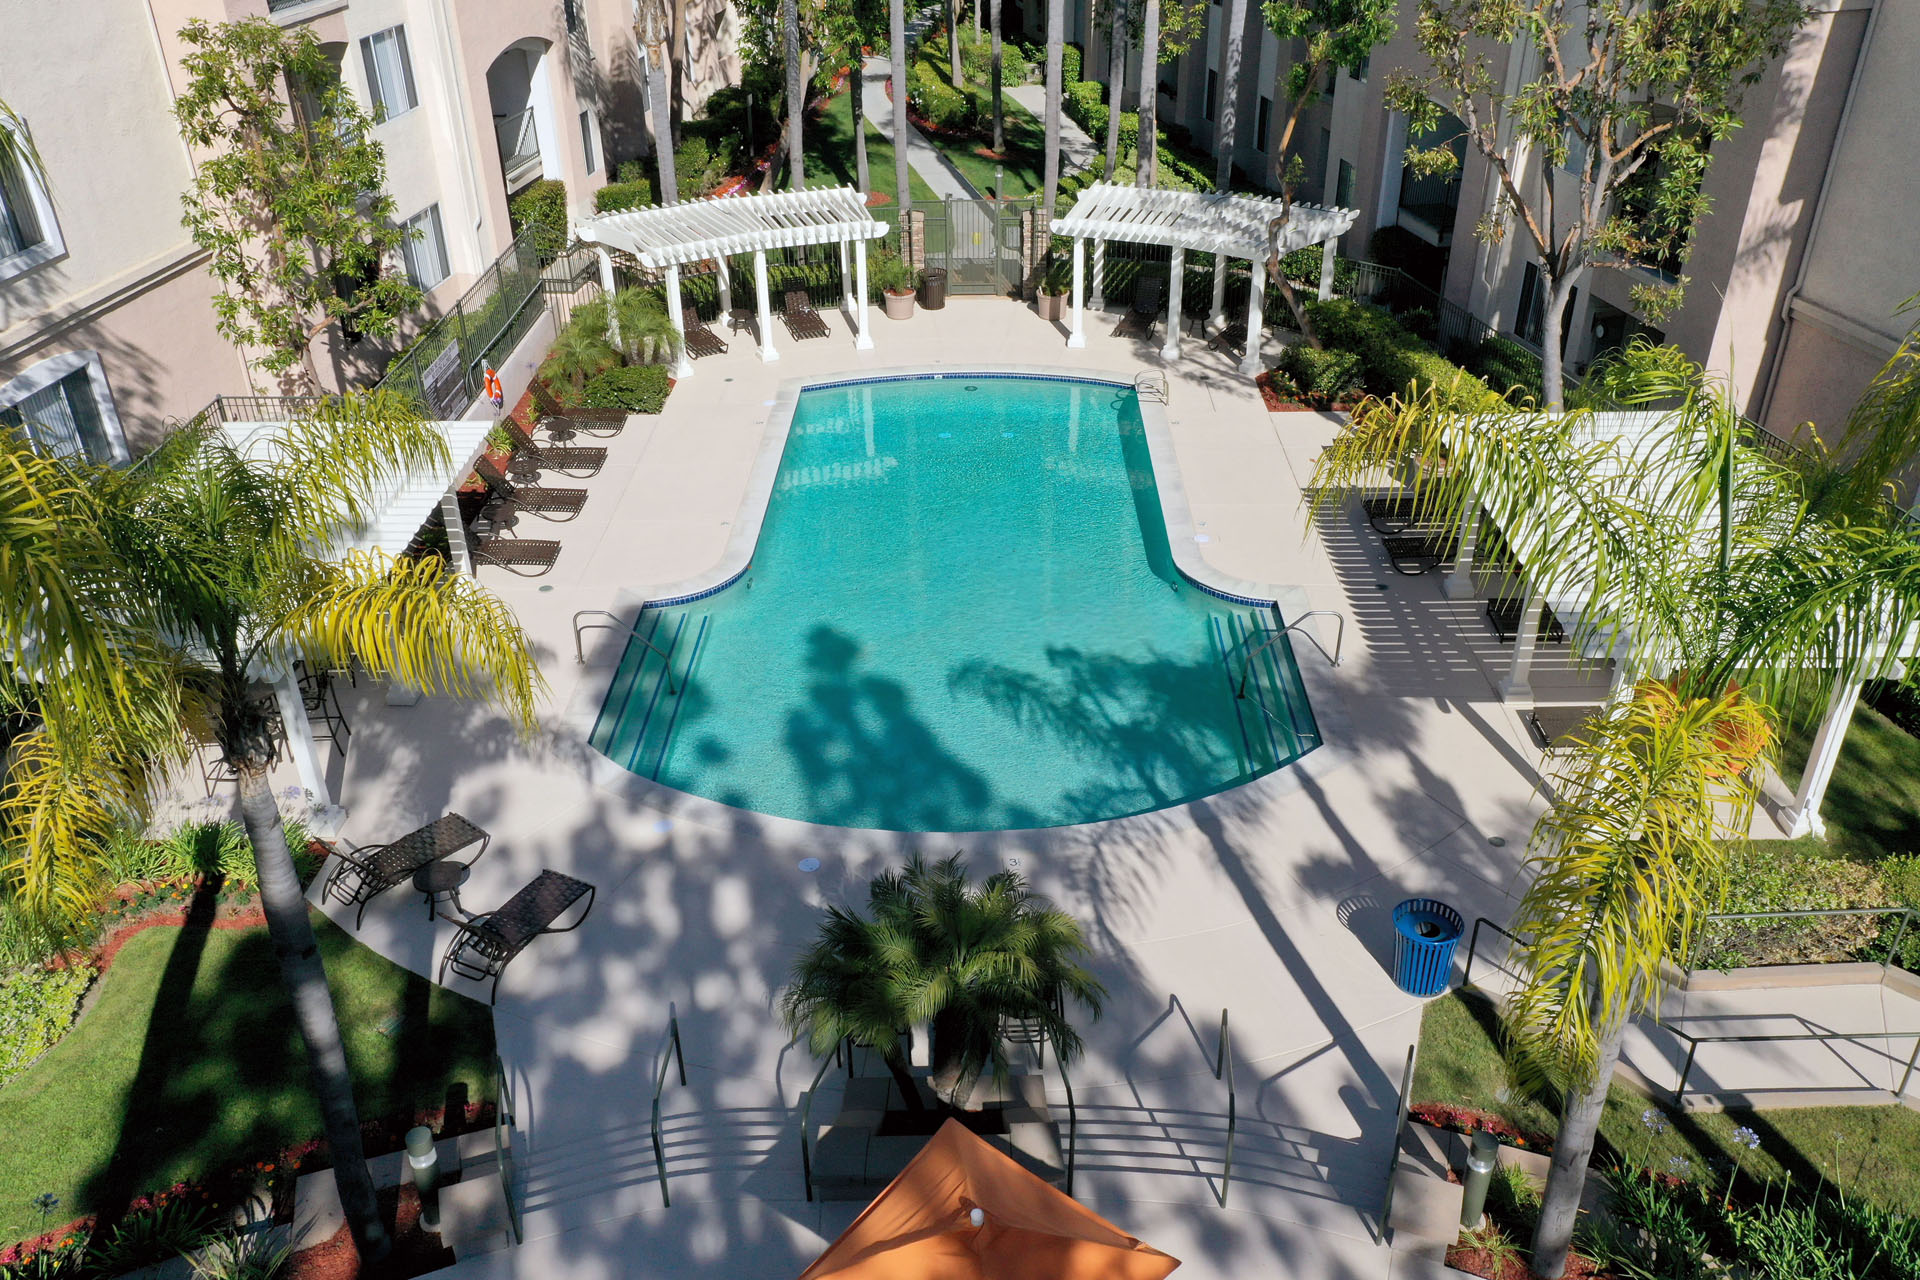 Apartments in Aliso Viejo CA-Aventine Apartments Swimming Pool Surrounded by Palm Trees, Lounge Chairs, and Gazebos